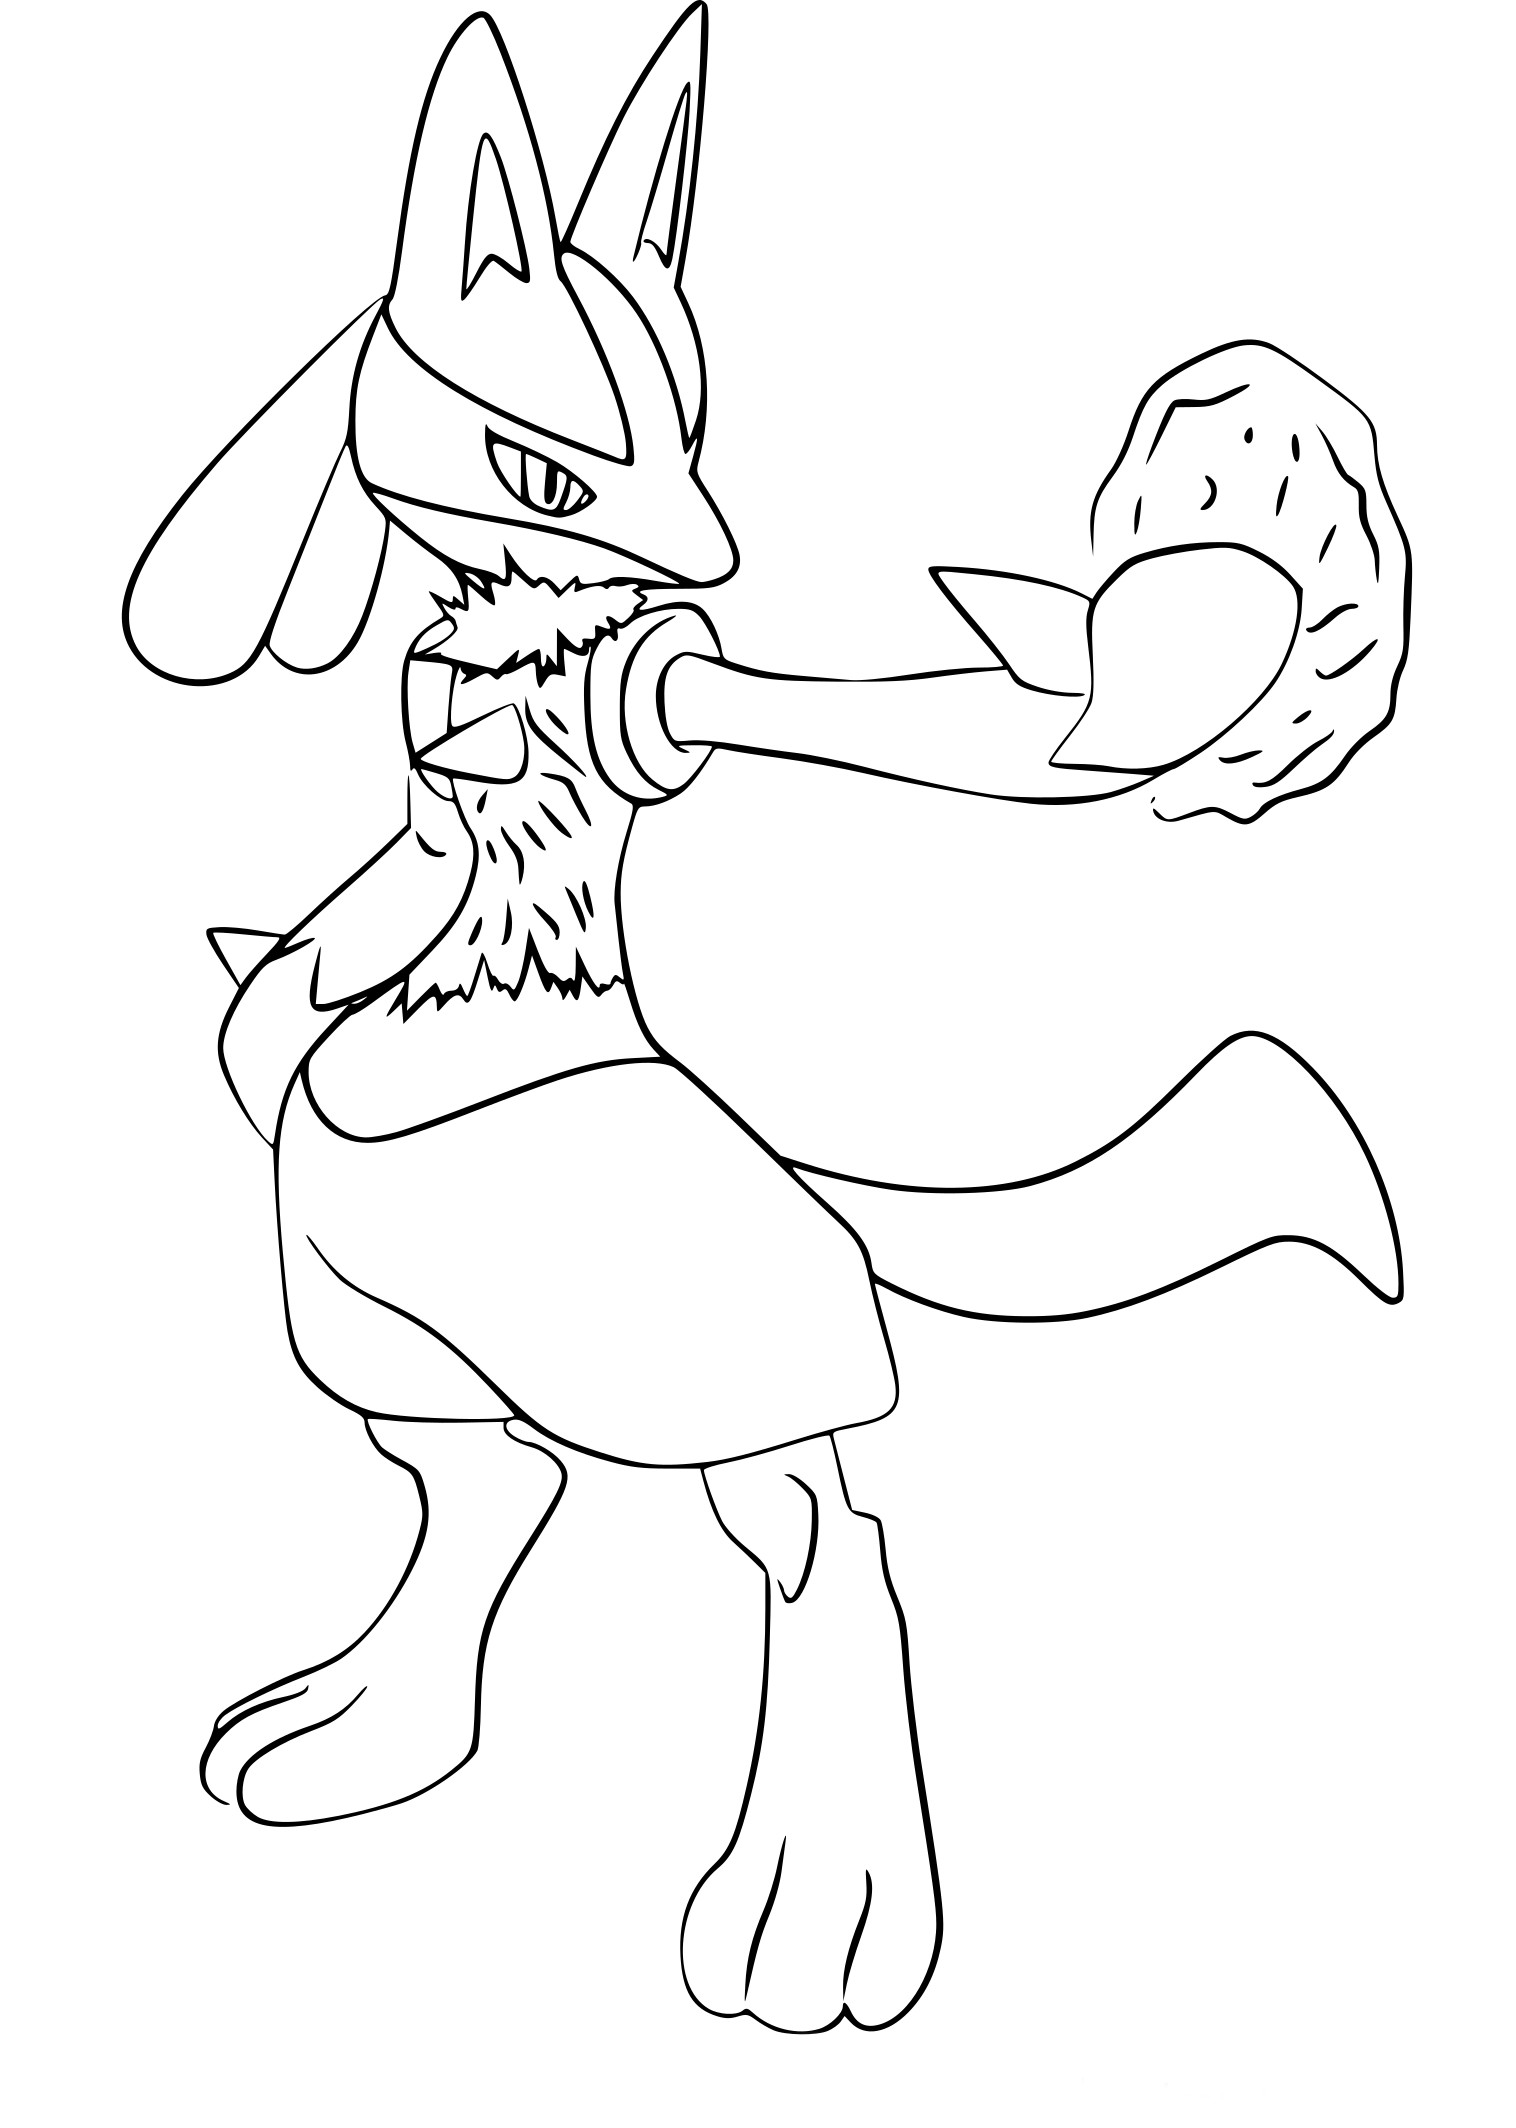 Coloriage Super Smash Bros Lucario à imprimer